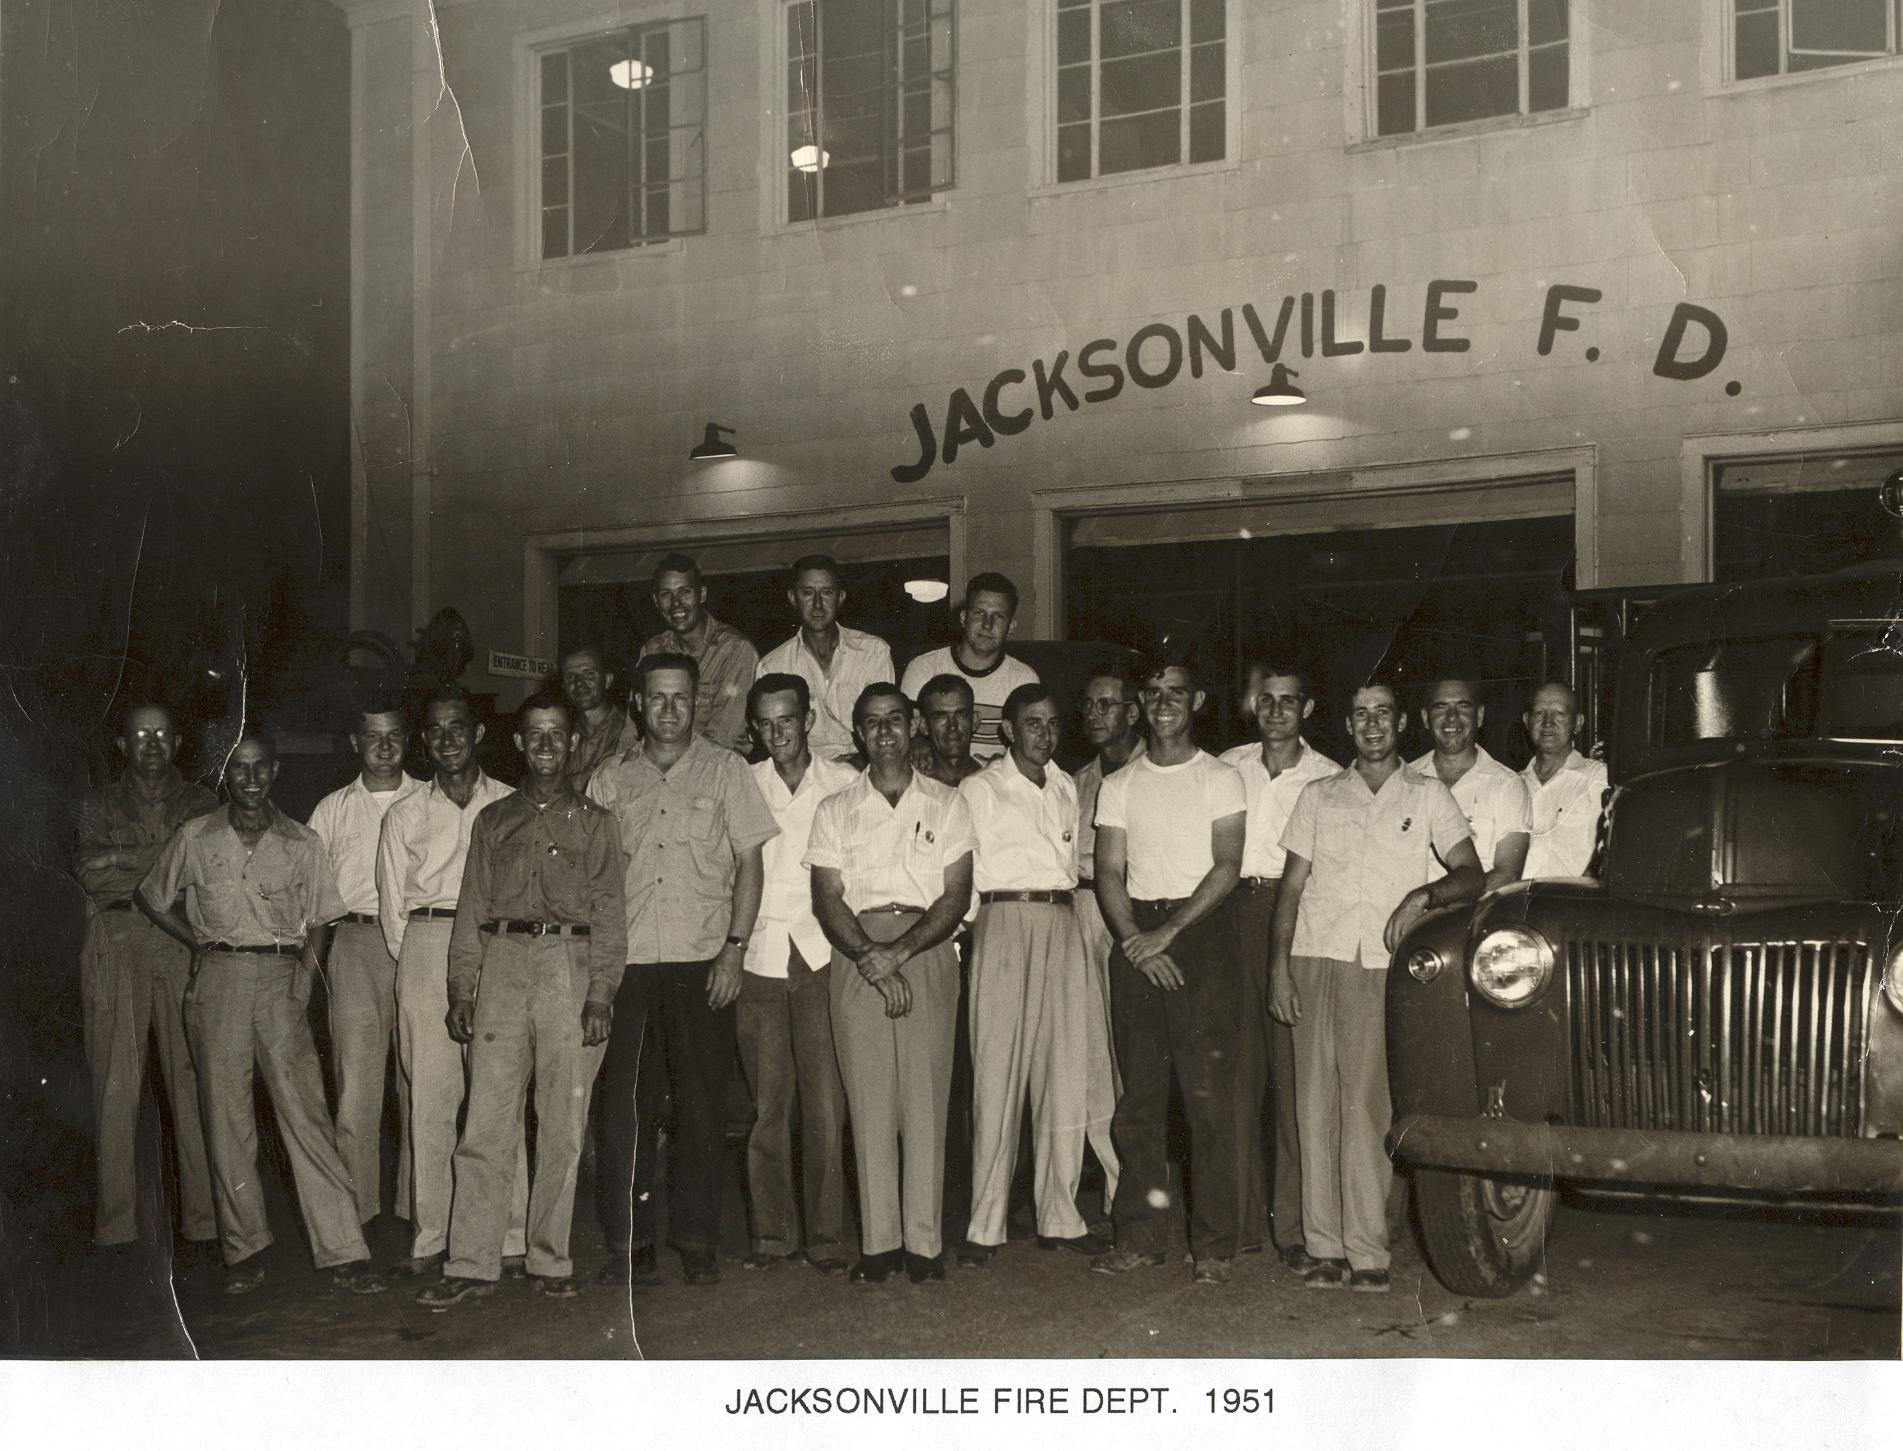 1951 Jacksonville Fire Department Group